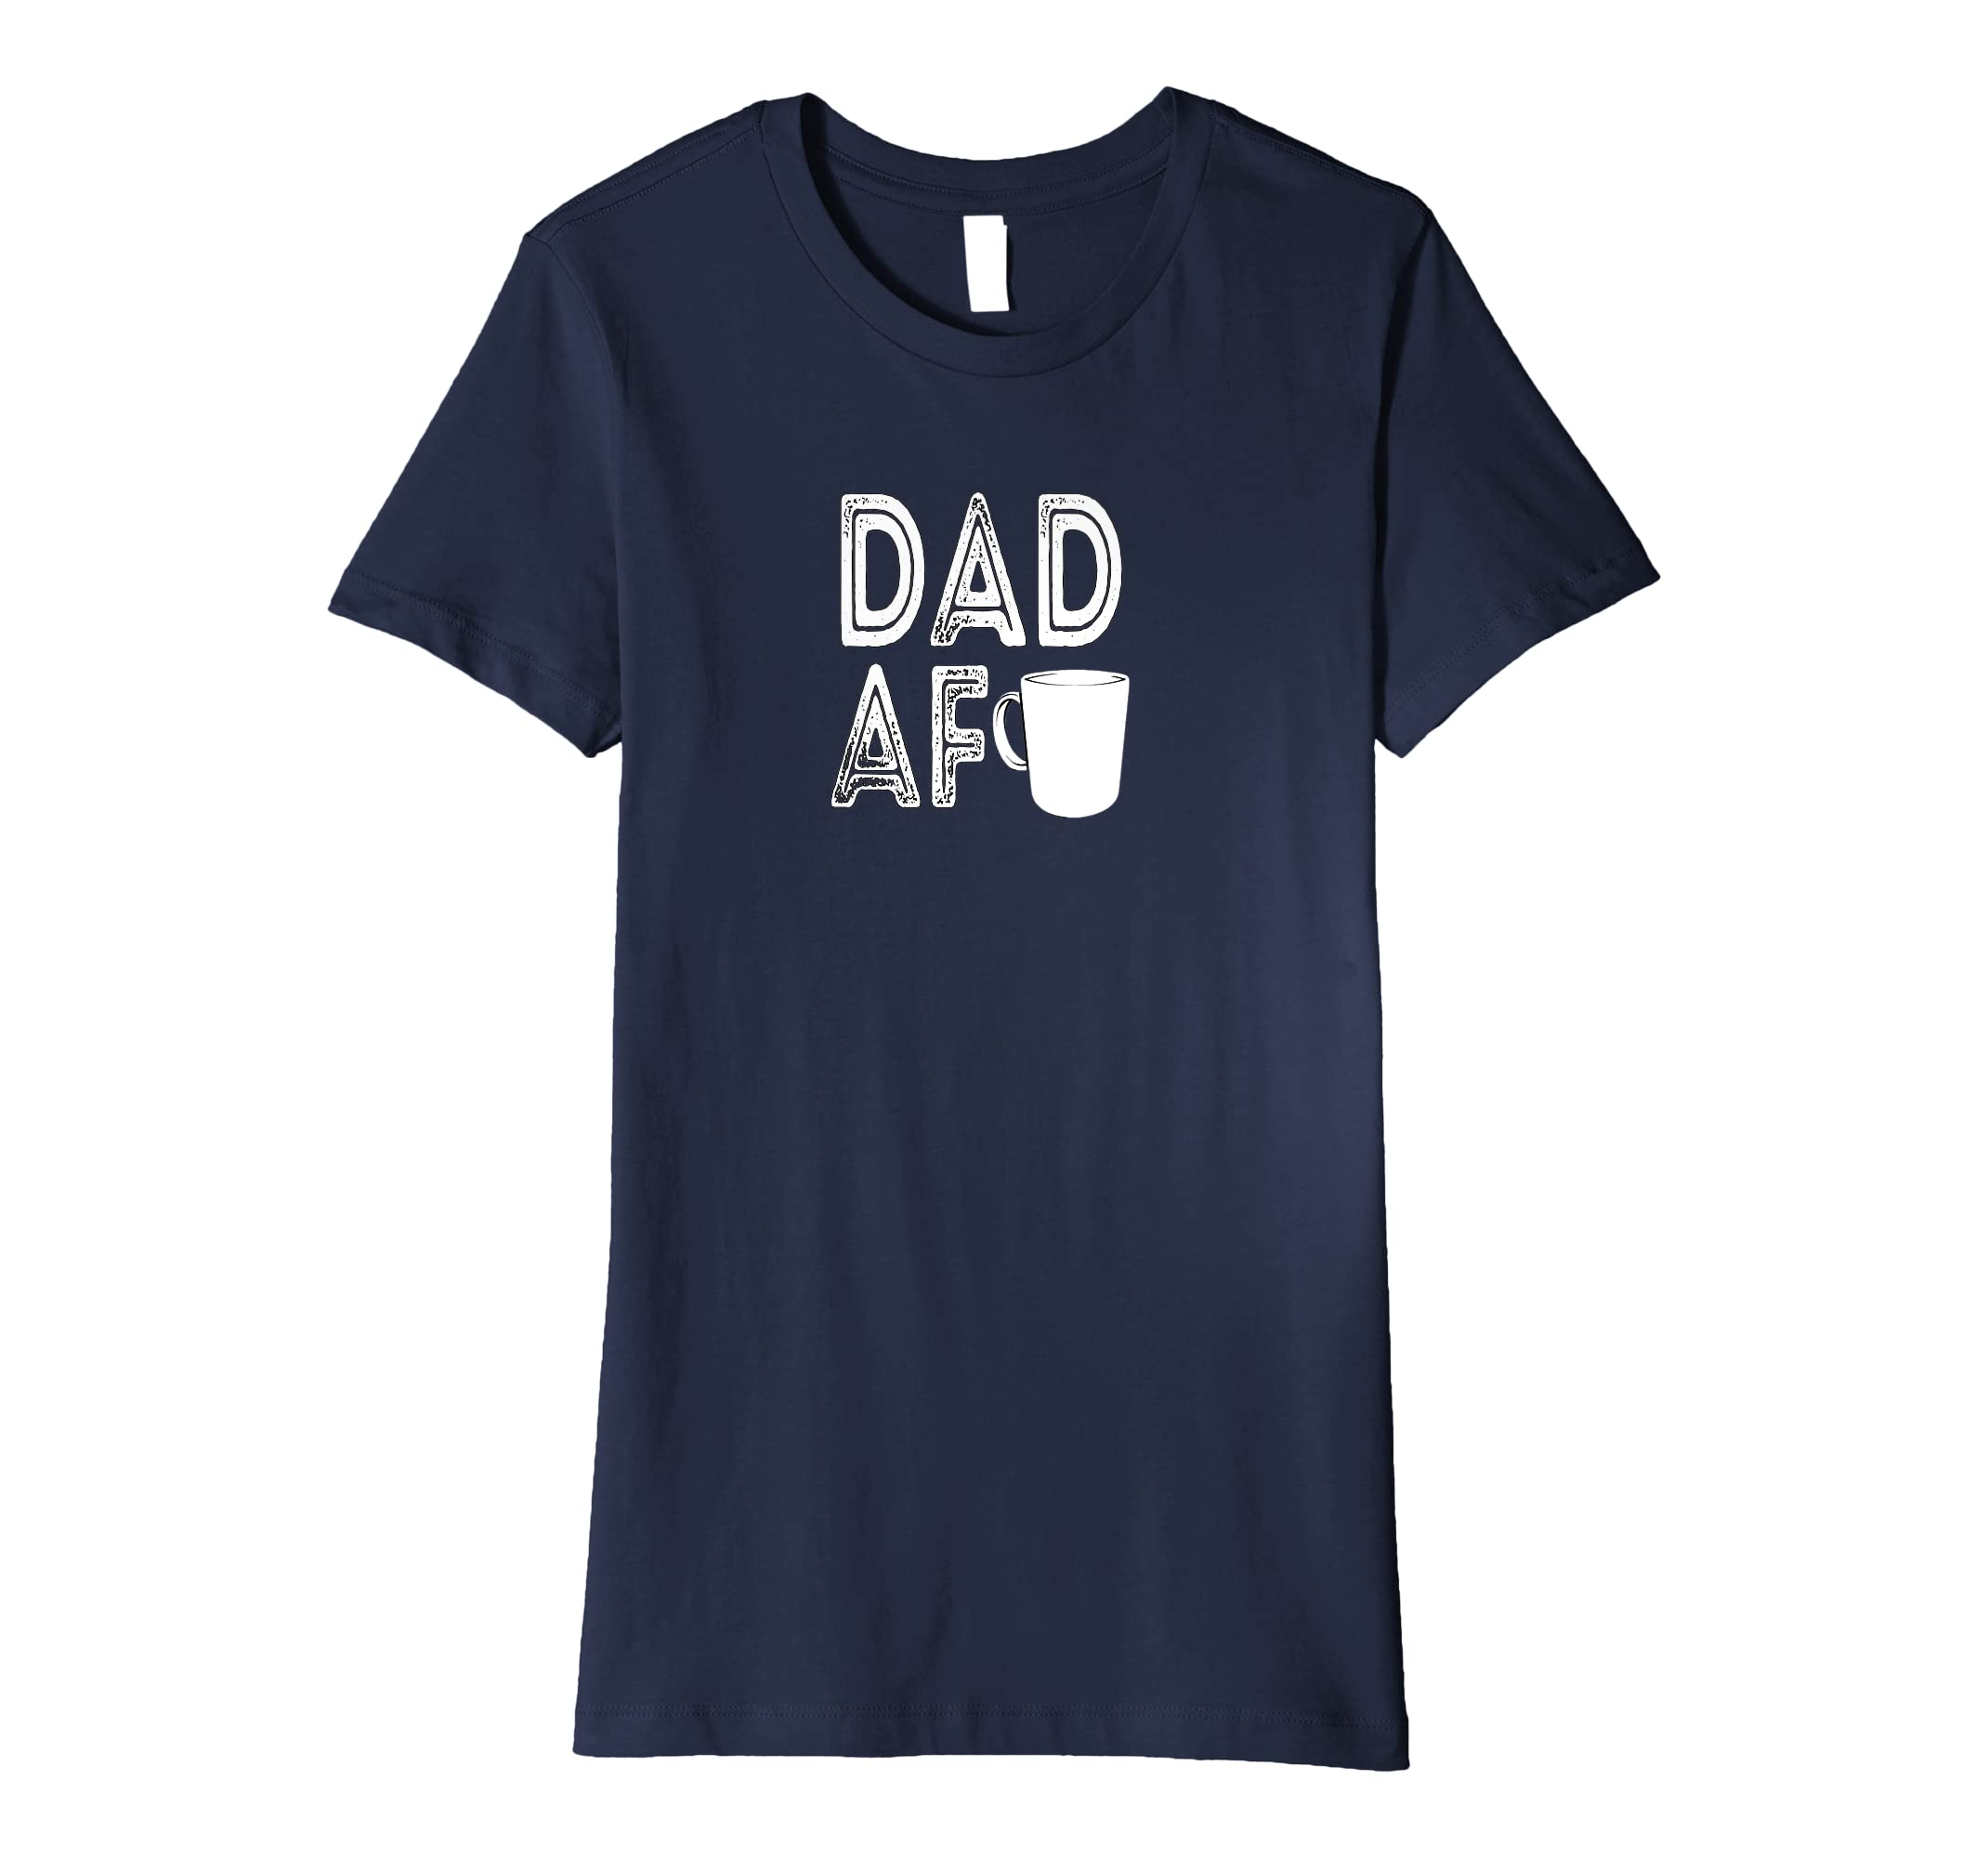 22565d29 Amazon.com: Dad Shirt - Funny Fathers day Dad AF Coffee T-shirt: Clothing